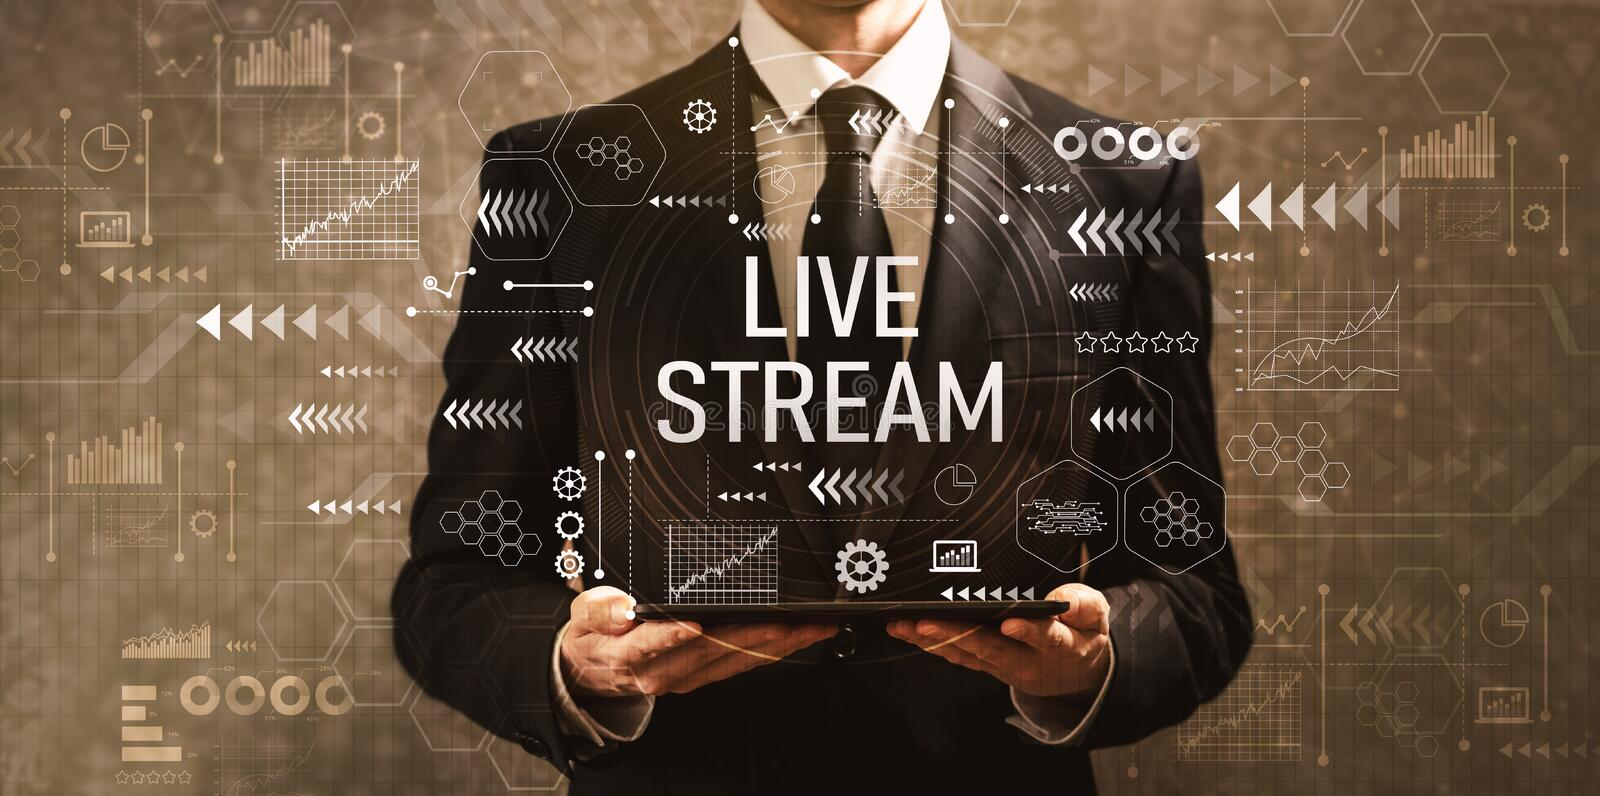 Live stream with businessman holding a tablet computer royalty free stock photo